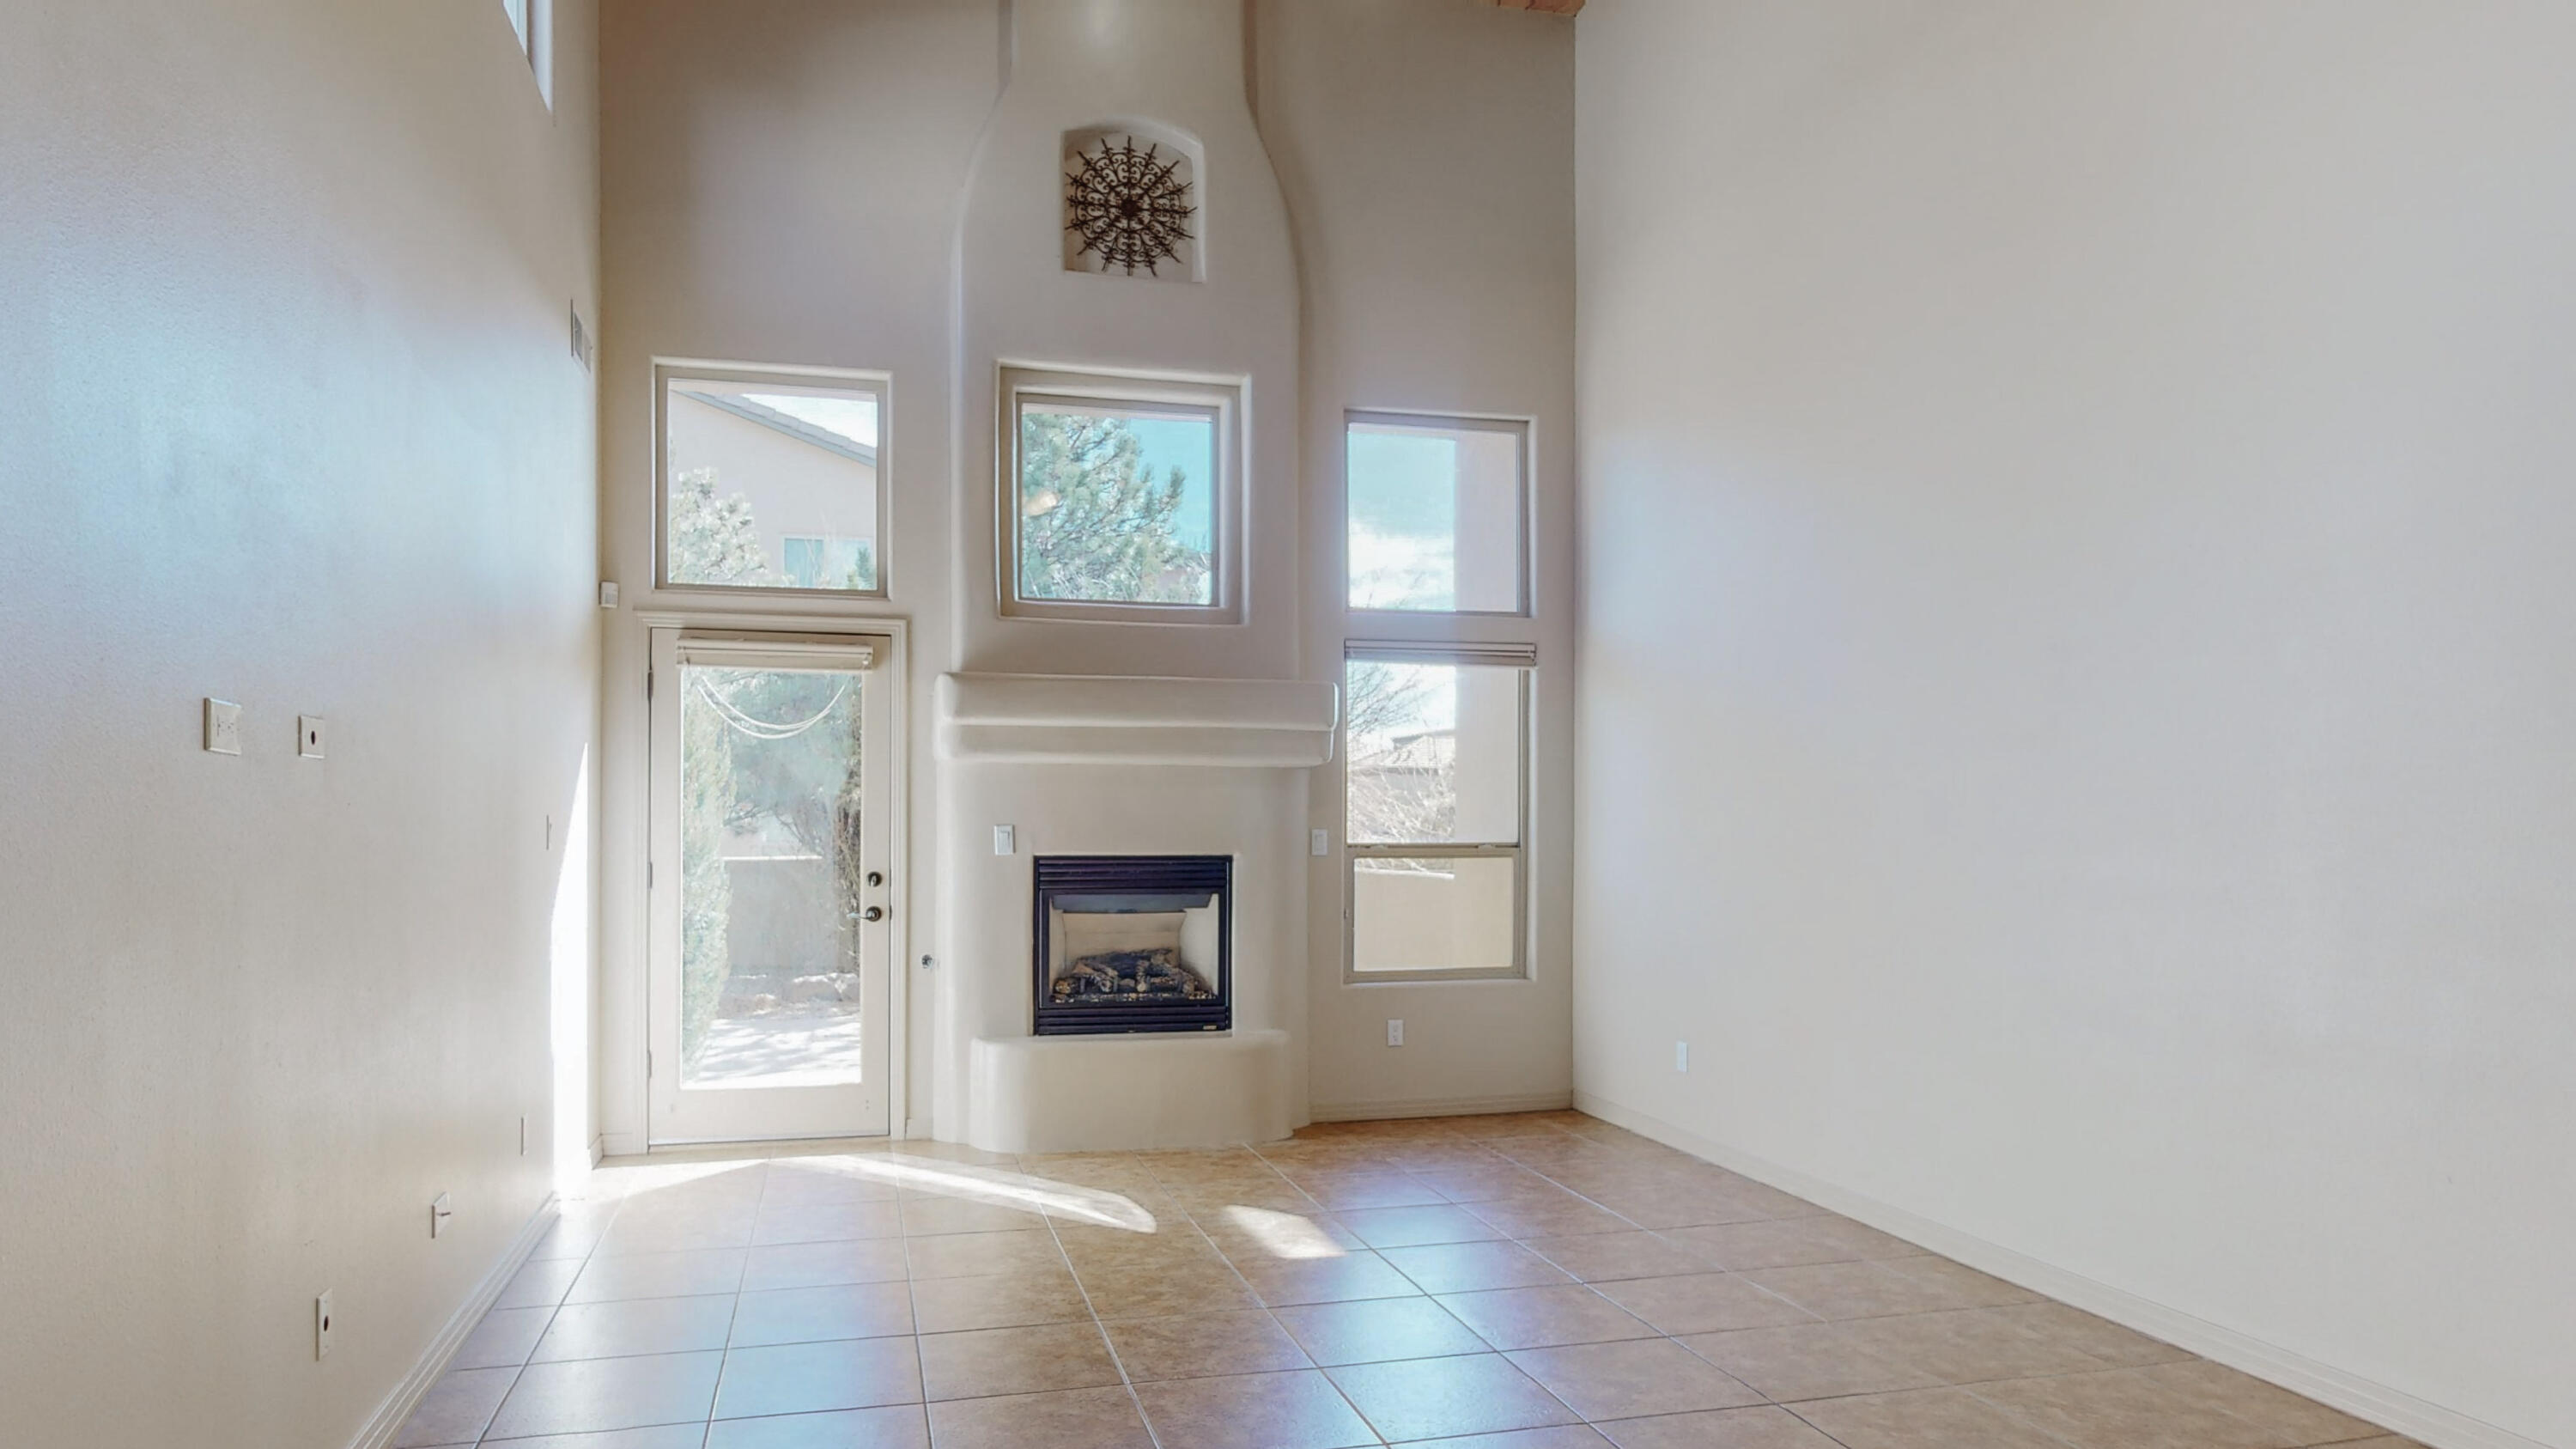 Great location in La Cueva Hi district! Elegant, gorgeous luxury condo in fabulous gated community. MBR is downstairs! Beautiful, open kitchen & greatroom. Nice master BR w/ lovely bath. Fabulous back yard! Great room is open & airy & bright. Kitchen is ready for any chef. New AC combo unit(2020), Newer water heater(2017), All the appliances stay.